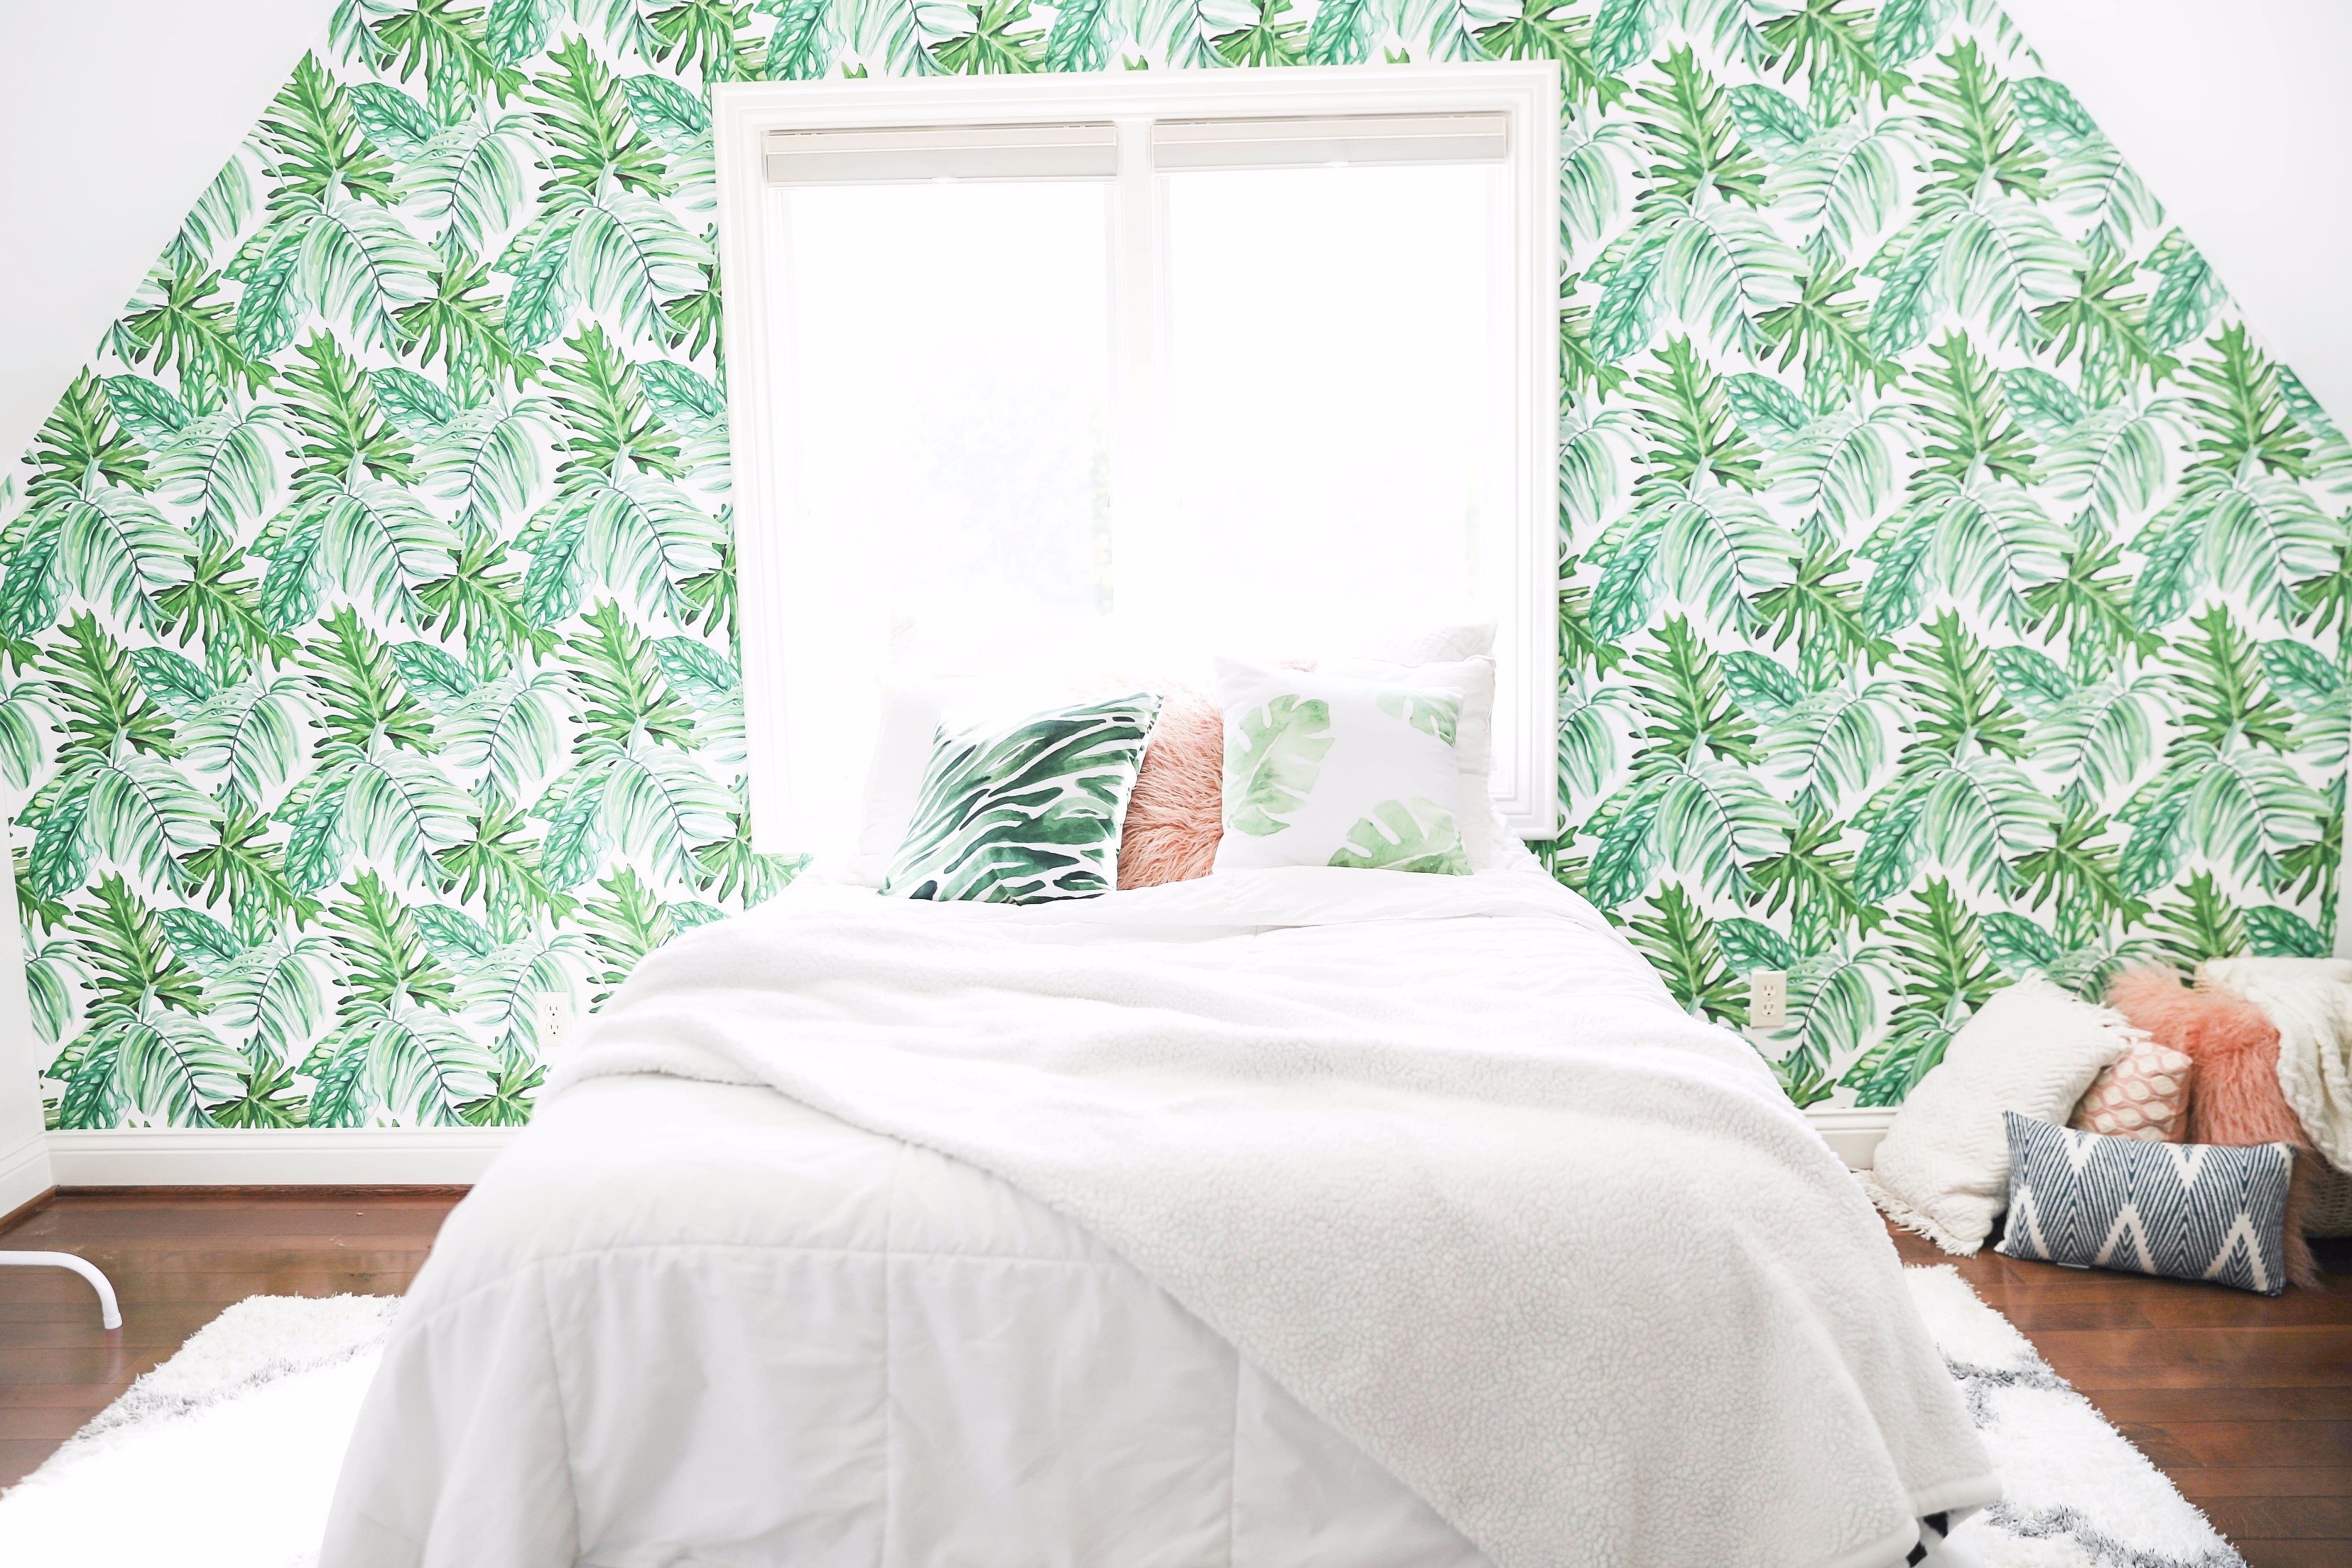 Transtioning your room into spring! How to make your room bright for spring! Details on fashion blog daily dose of charm by lauren lindmark